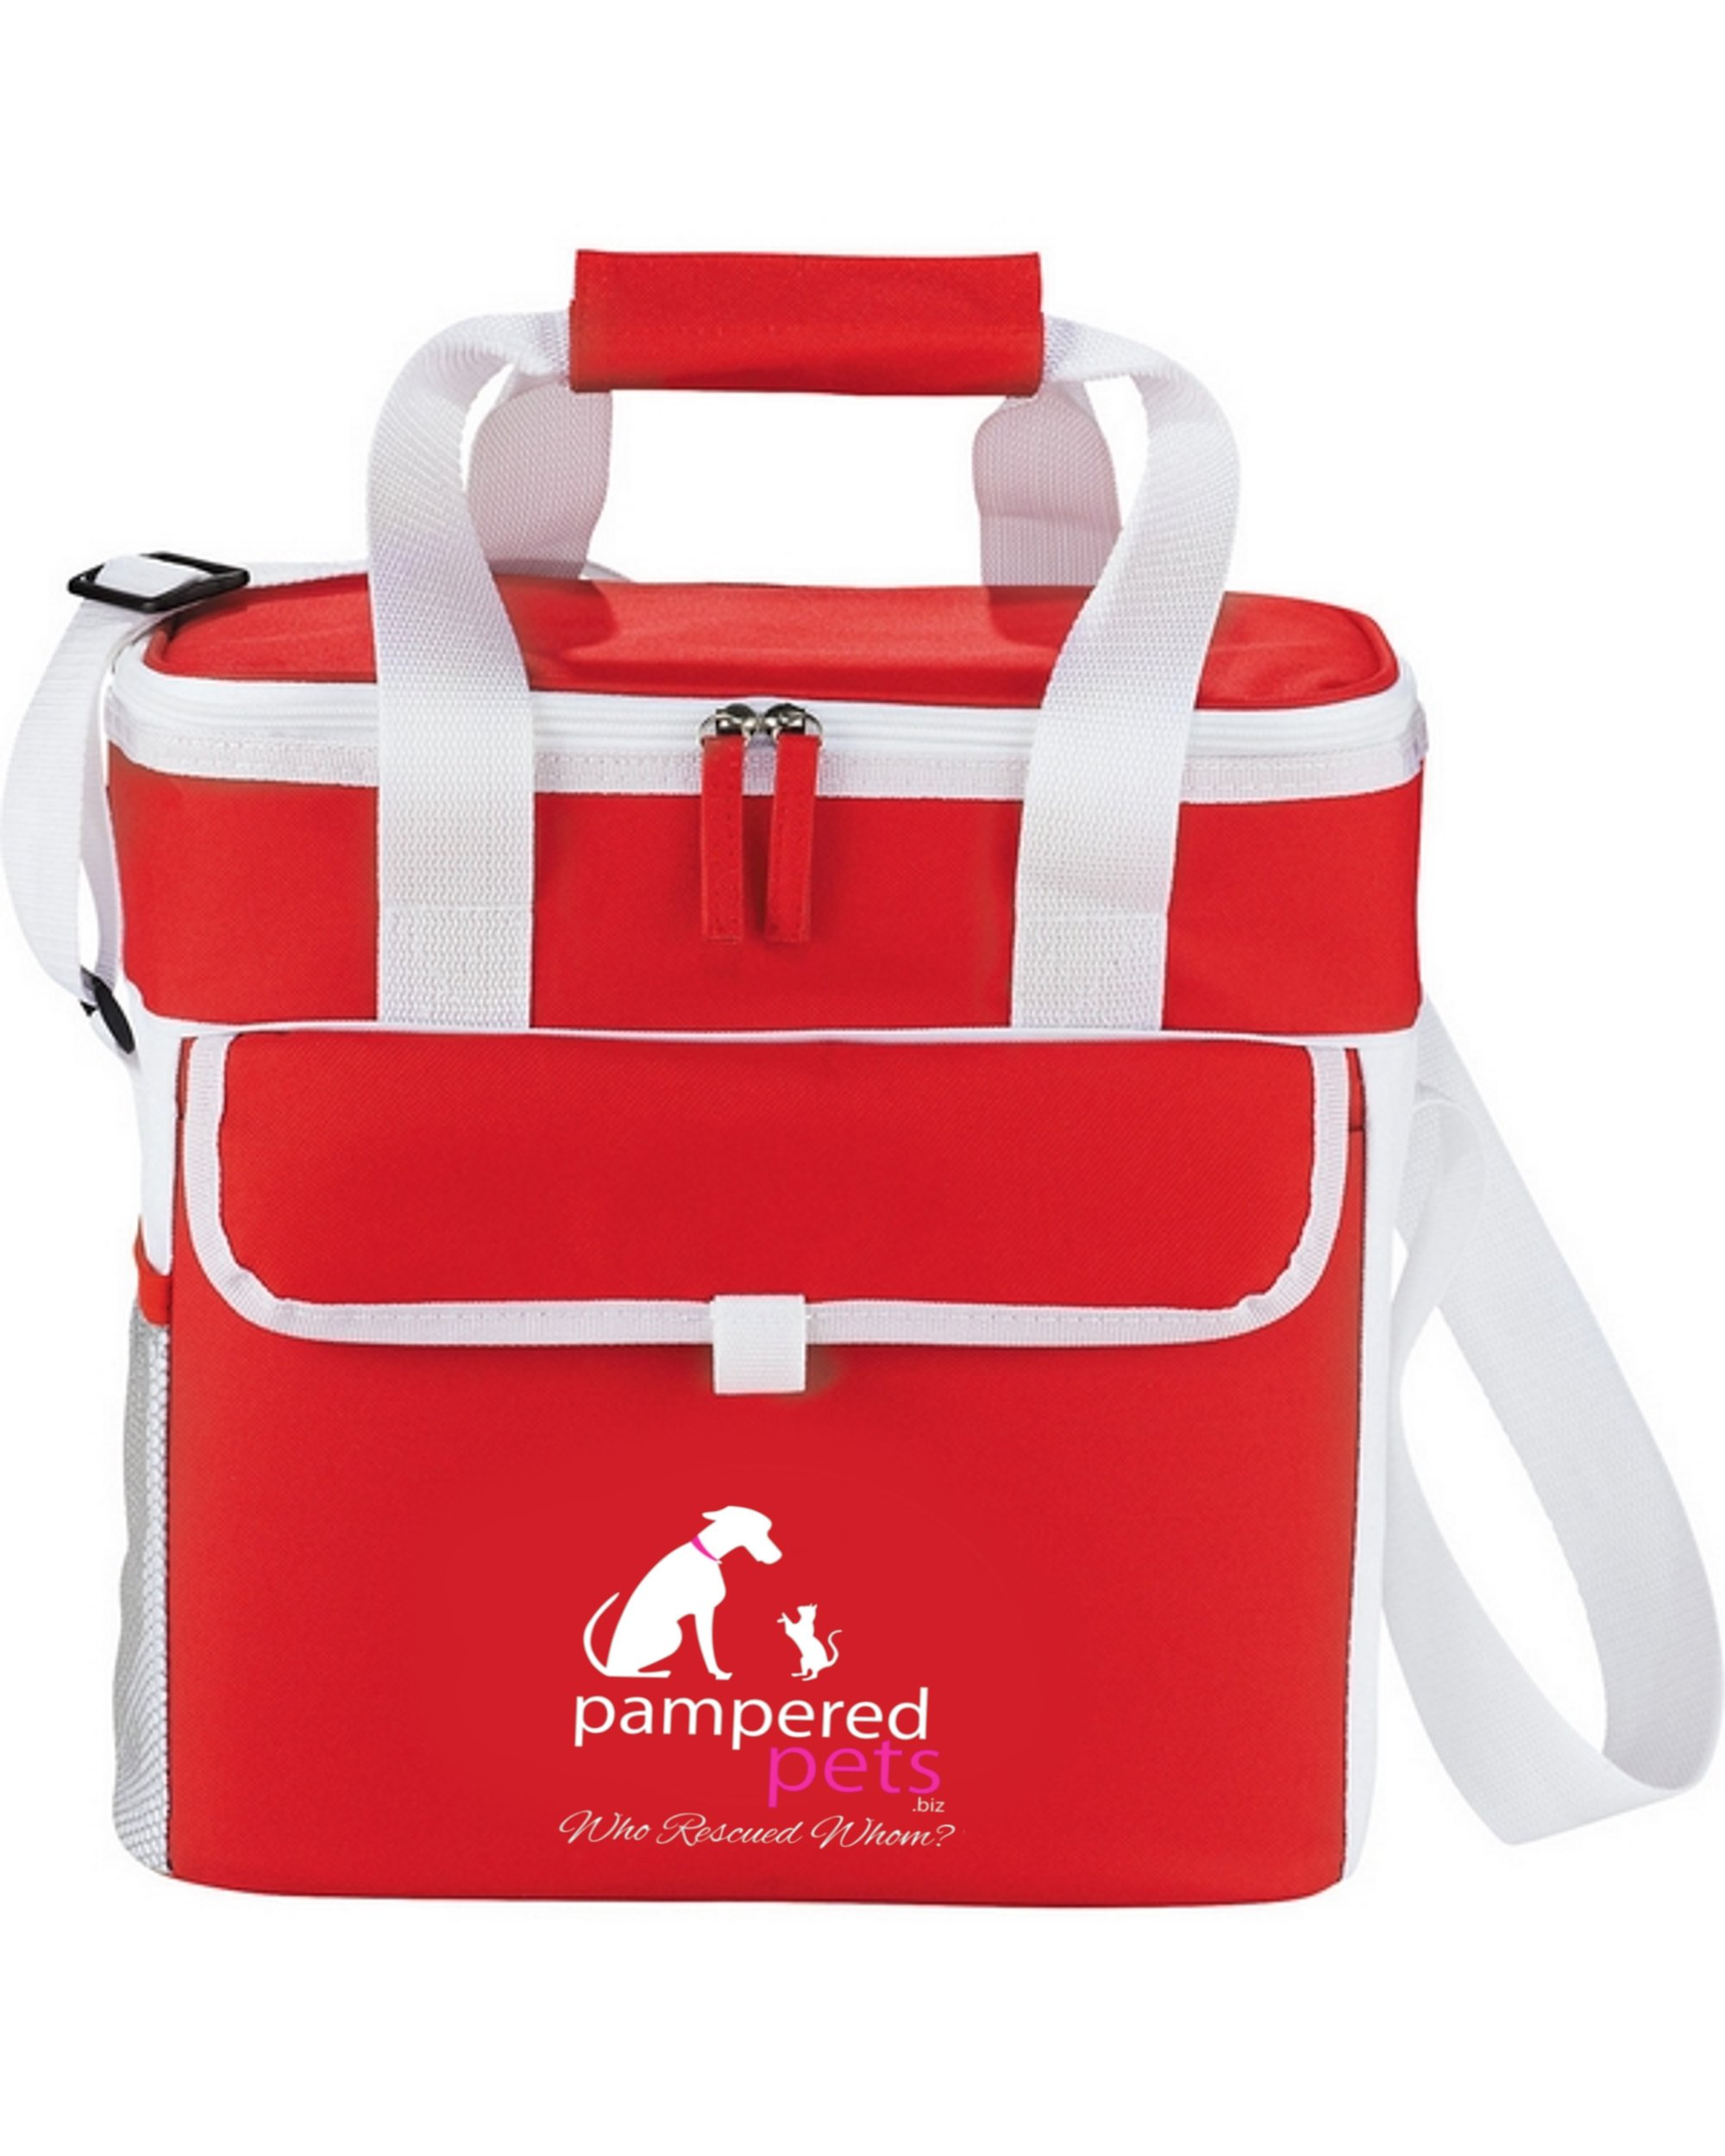 Pampered Pets ''Who Rescued Whom'' Game Day Sport Cooler, Red